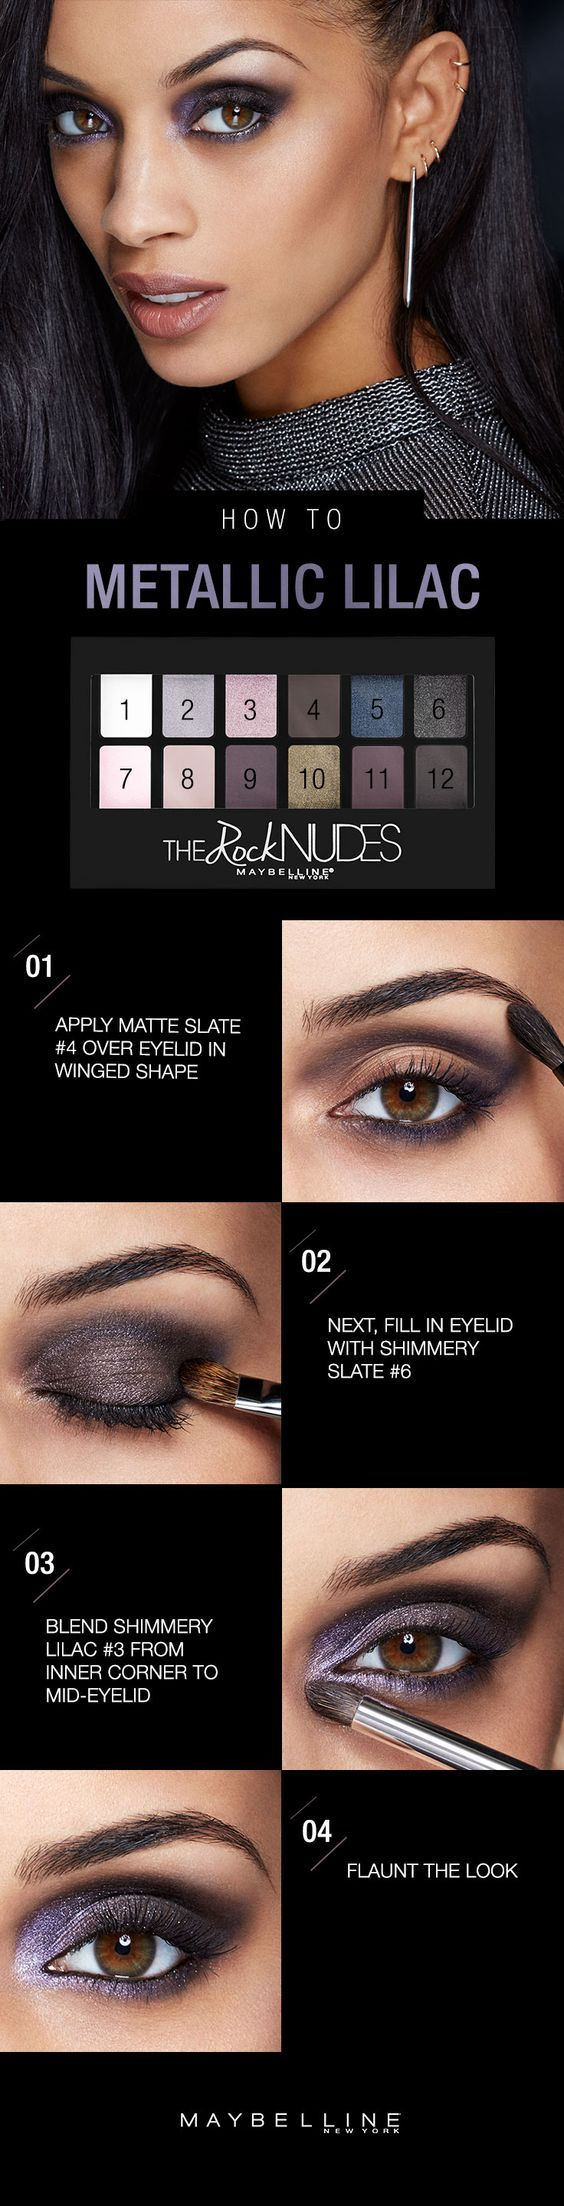 Feeling dark and daring this winter? Take this metallic smoky eye with a pretty amethyst shine and run with it. Grab your Maybelline Rock Nudes eyeshadow palette and apply the matte slate shade from inner to outer corner of eyelid, forming a wing shape. Smudge with brush to smoke out your wing, then fill in your eyelid with shimmery slate before blending it all in with shimmery lilac from your inner corners to mid-eyelid. Oh yeah. You're a badass. Click for the full step-by-step!: